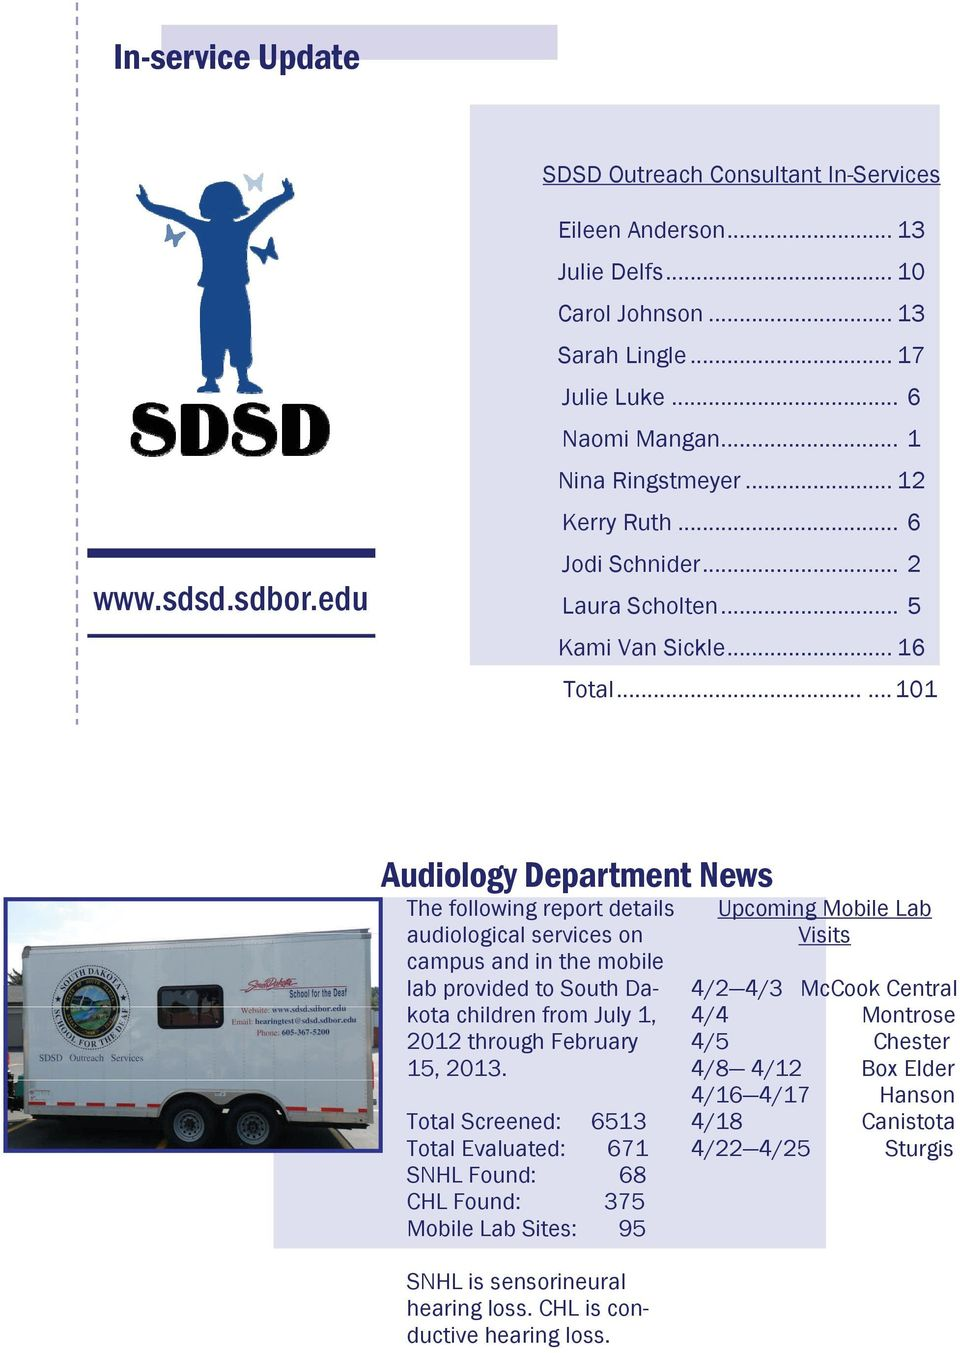 ..... 101 Audiology Department News The following report details audiological services on campus and in the mobile lab provided to South Dakota children from July 1, 2012 through February 15, 2013.